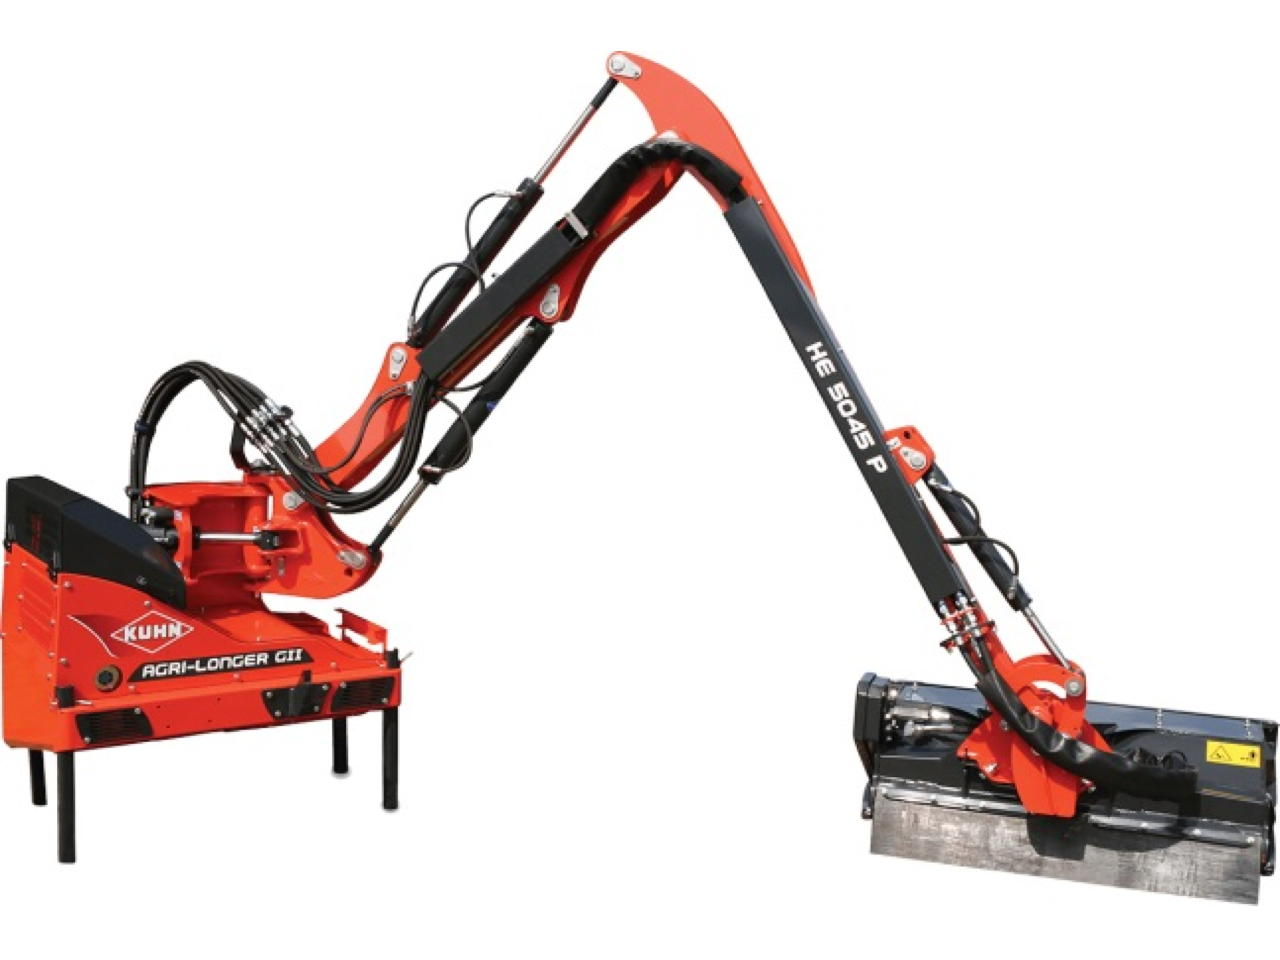 Kuhn Agri-Longer GII con perno di sicurezza Agri Longer GII 5045 P TC